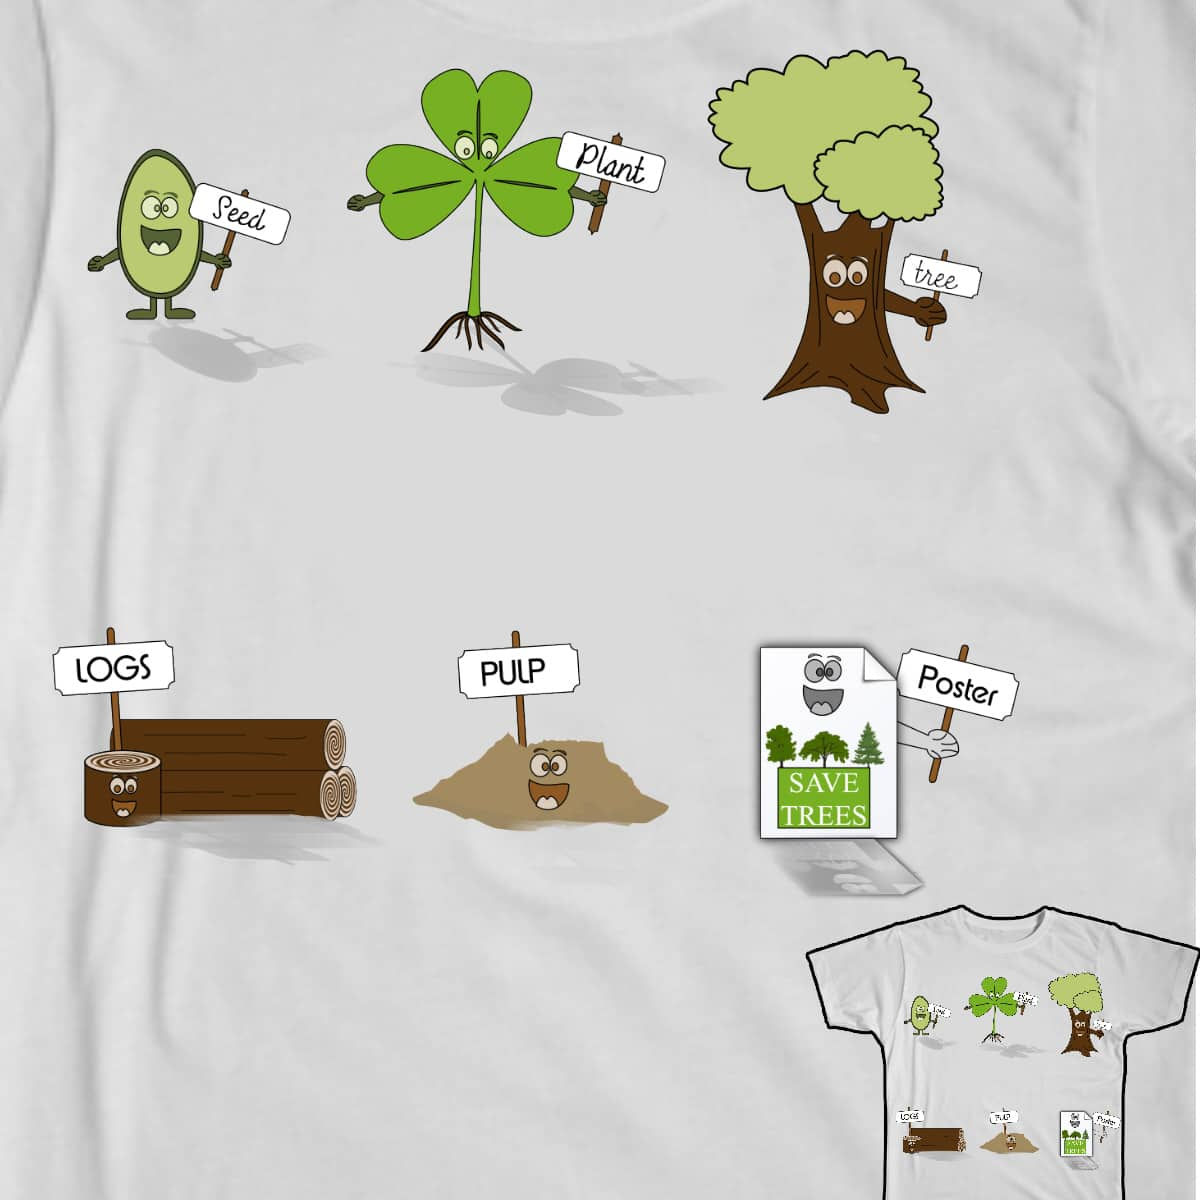 Life Cycle of Plant by GETHUED on Threadless